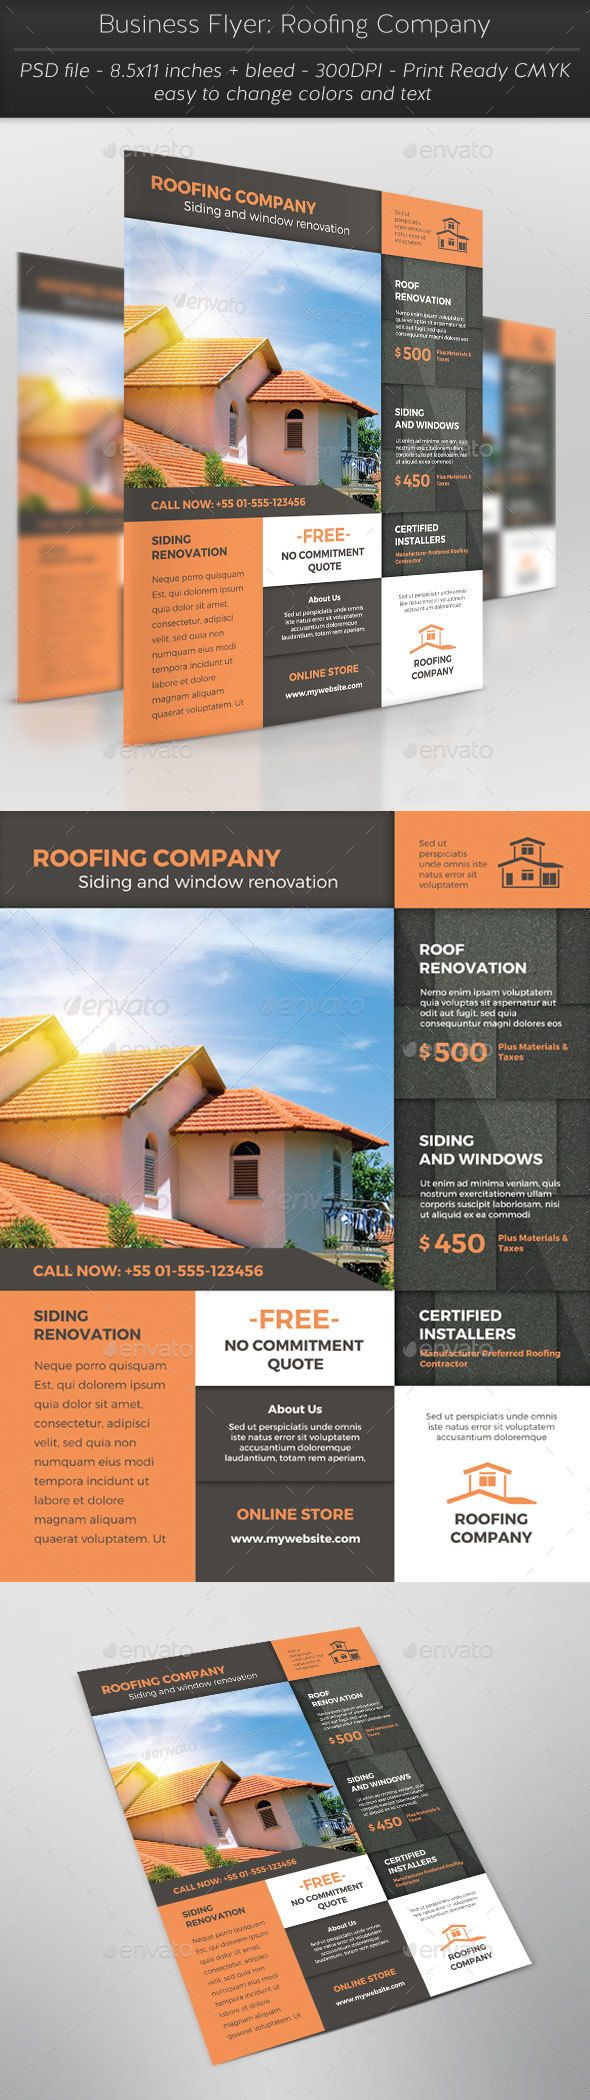 Business Flyer: Roofing Company - Flyers Print Template PSD. Download here: http://graphicriver.net/item/business-flyer-roofing-company/16701434?s_rank=303&ref=yinkira